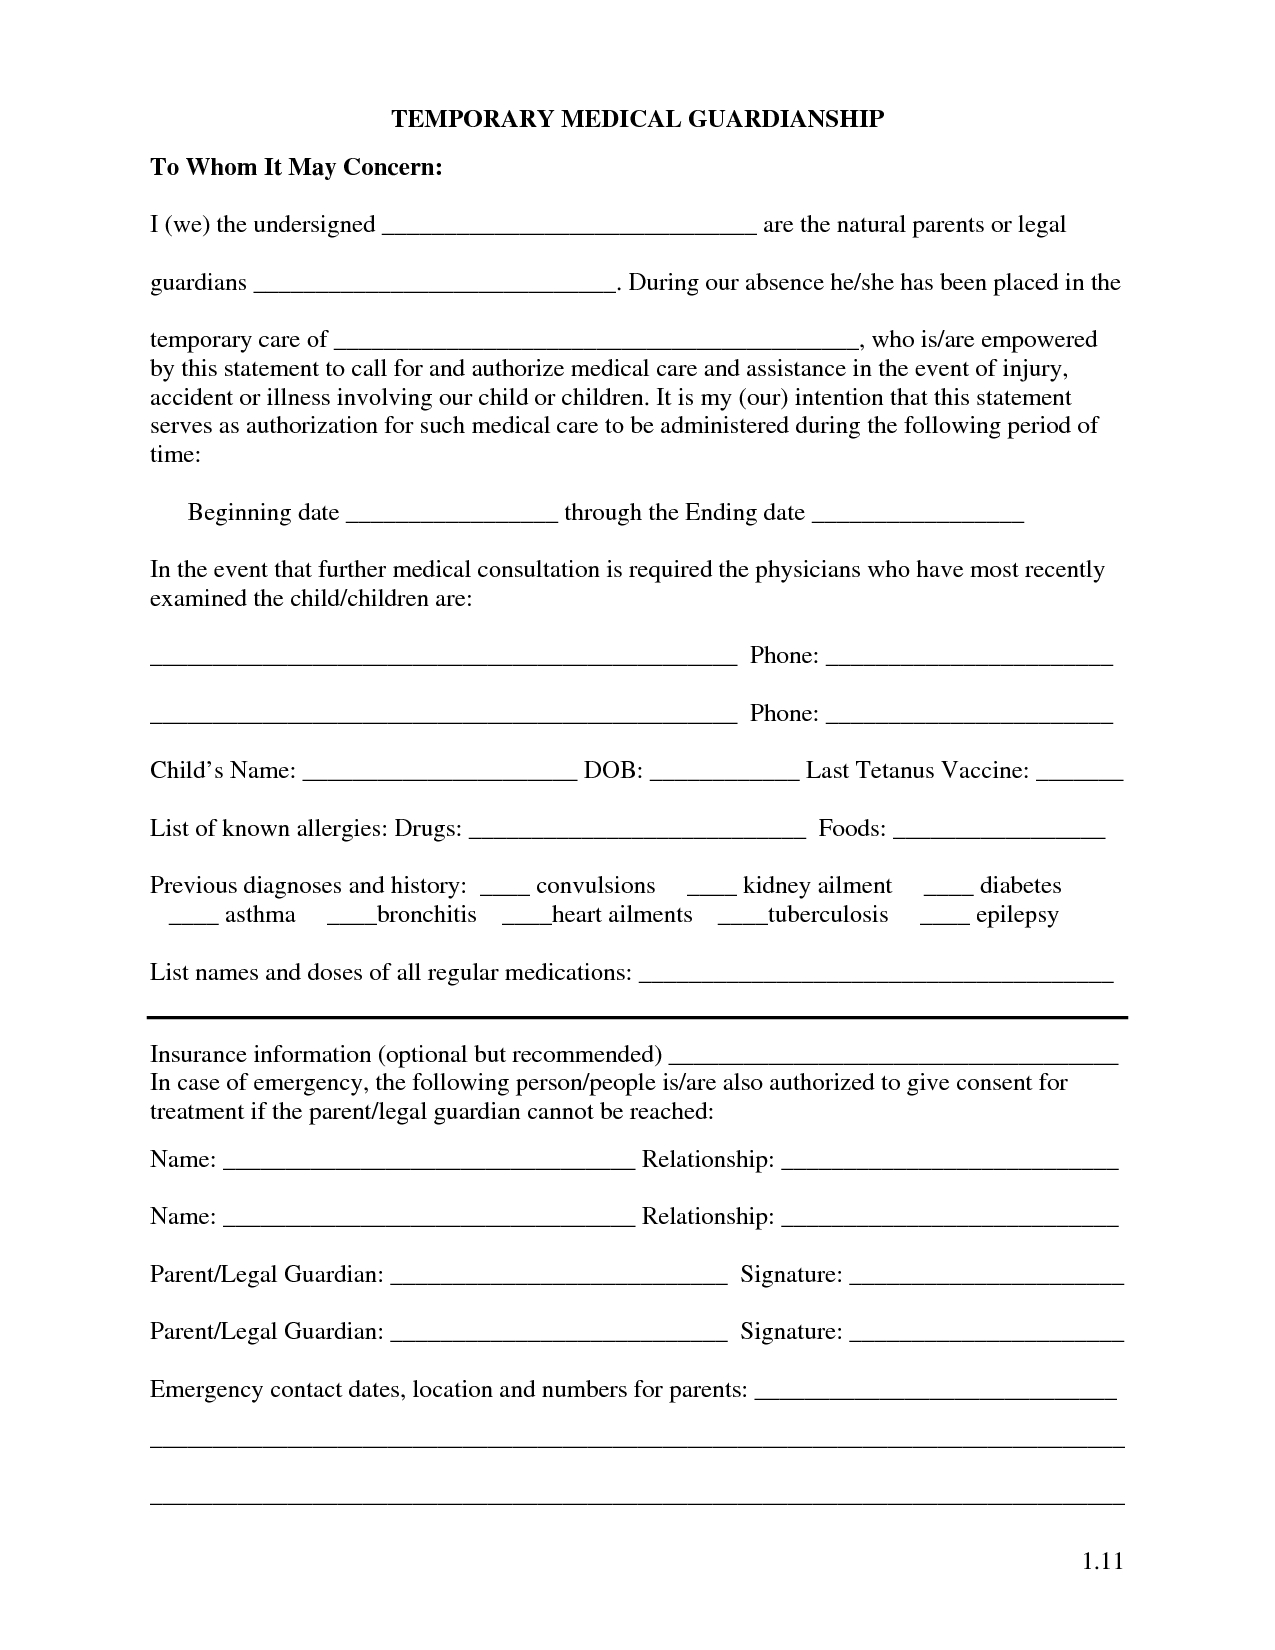 Free Printable Temporary Guardianship Forms | Forms | Child Custody - Free Printable Child Guardianship Forms